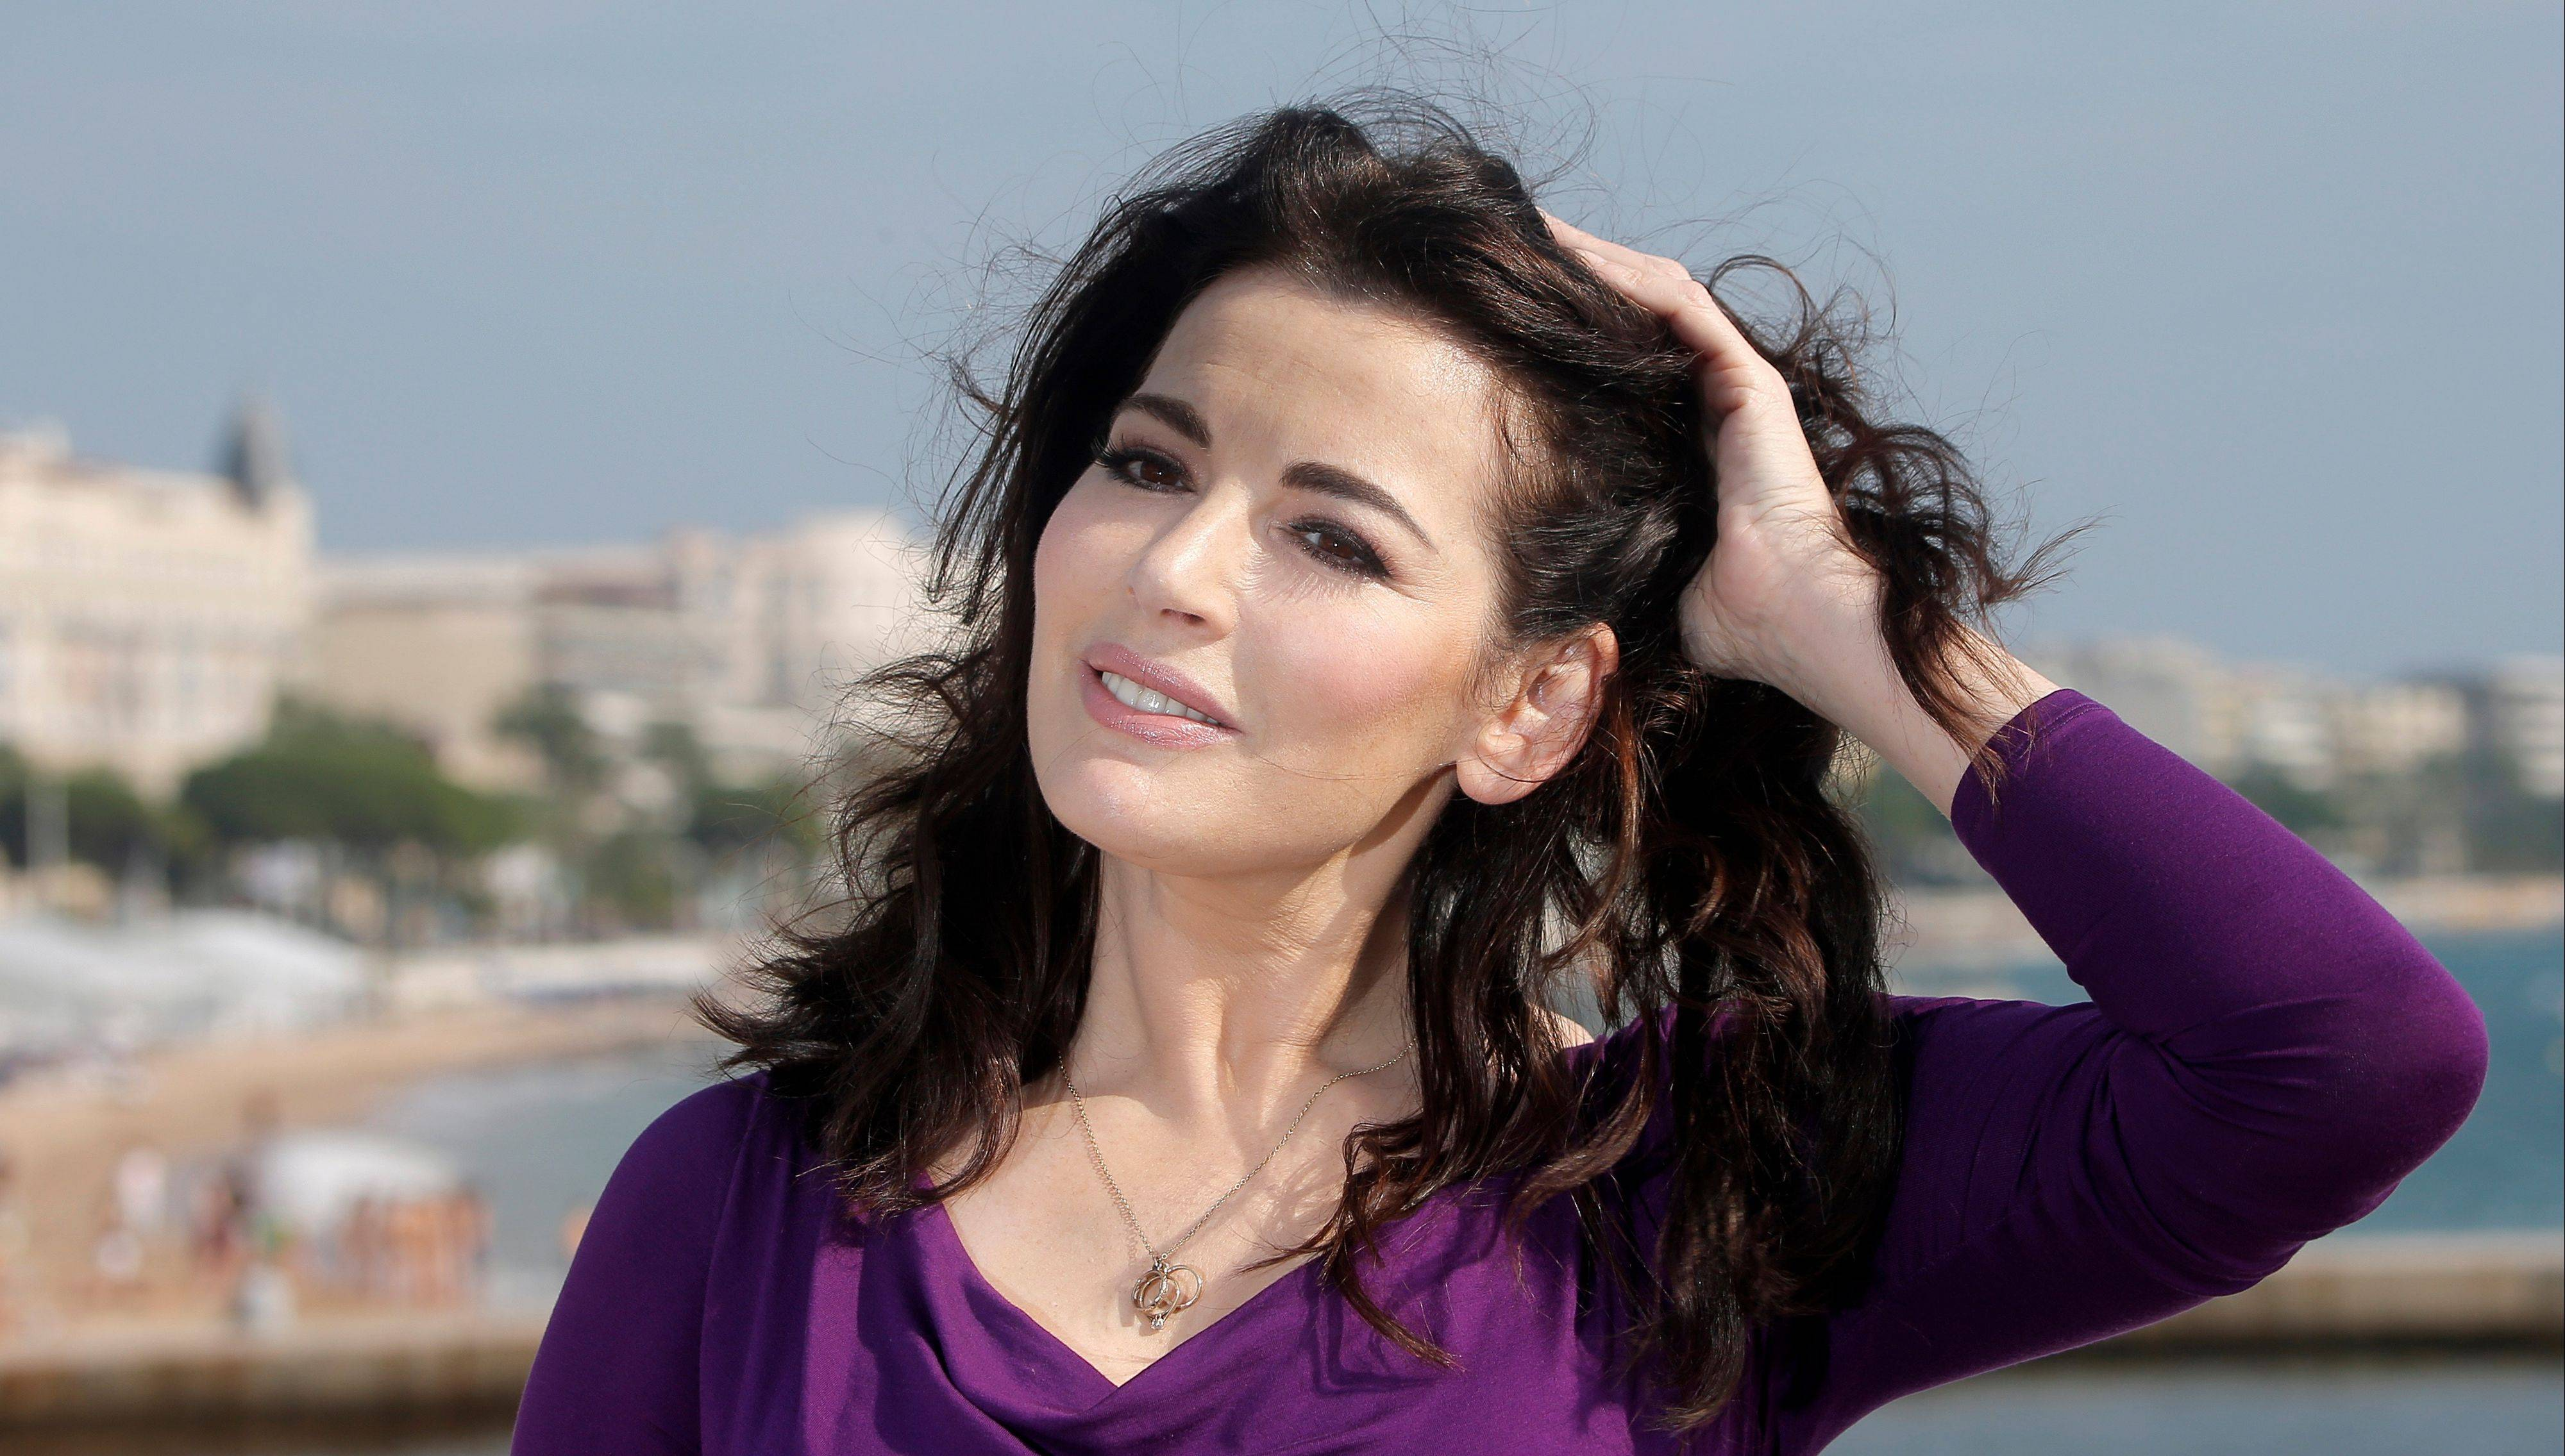 This past summer, photos of British food writer, journalist and broadcaster Nigella Lawson and her husband surfaced in which her husband appeared to be choking her. Then two former employees accused of using the couple�s credit cards for more than $1 million in fraudulent charges claimed she had sanctioned their spending to hush them up about her heavy drug use.